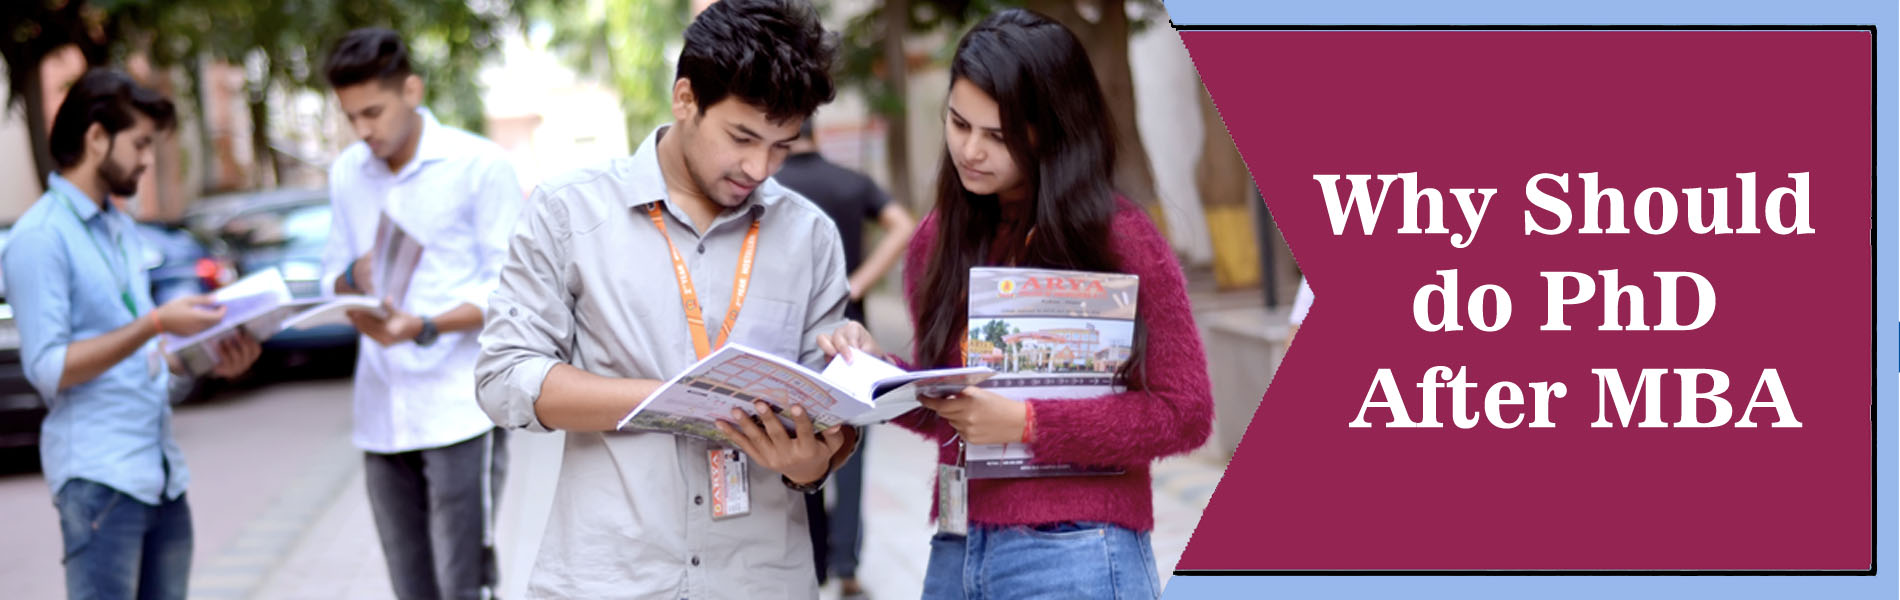 phd-after-mba, Arya Logo, Arya College of Engineering and iT, Arya 1st Old Campus, Arya SP42, Arya College Jaipur, Arya College, ACEIT, Best Engineering College in Rajasthan, Arya Kukas, Arya Jaipur, Top 5 Engineering College in Rajasthan